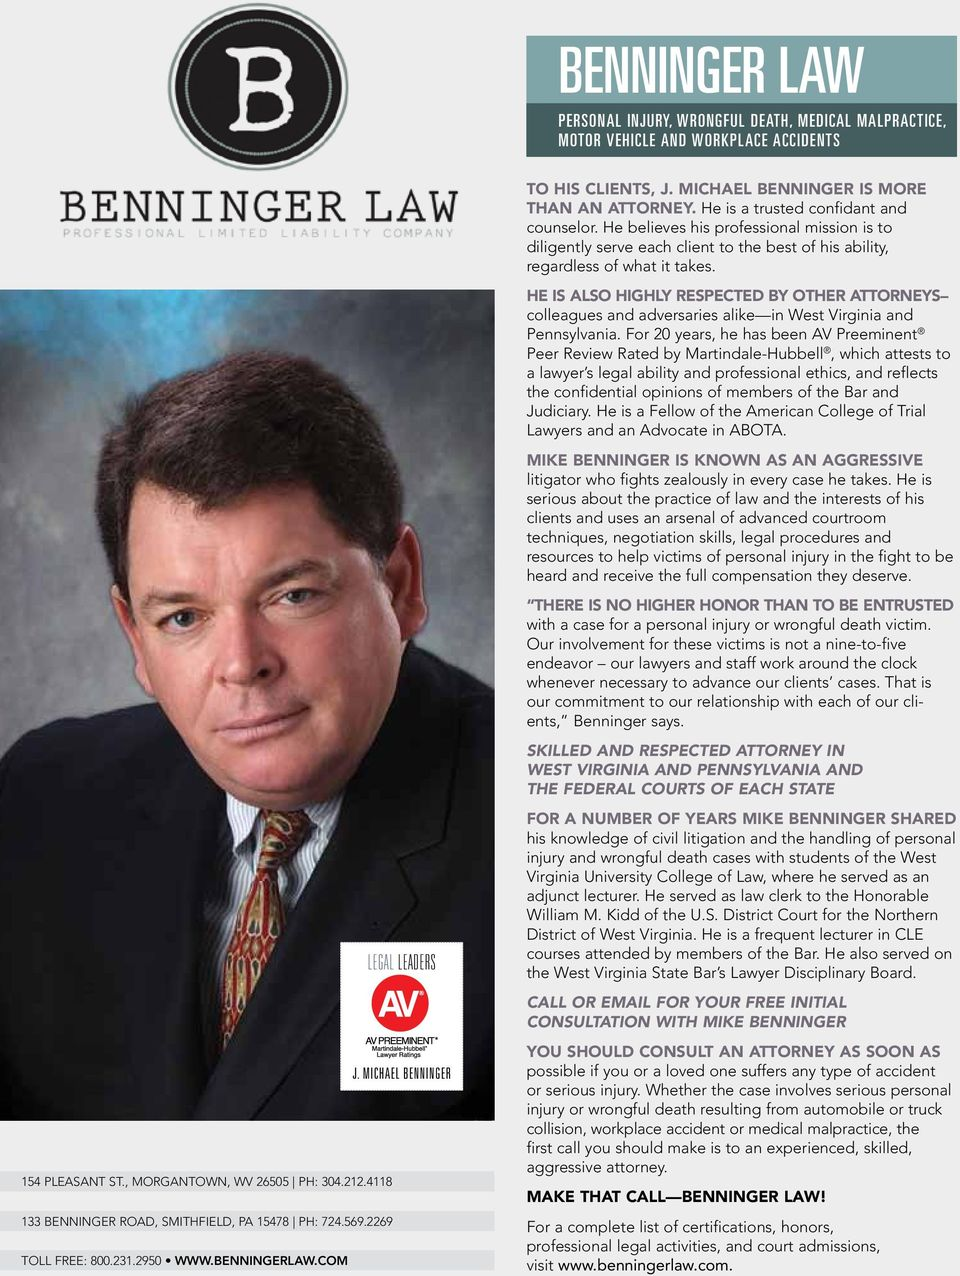 he is Also highly REsPEcTEd By other ATToRnEys colleagues and adversaries alike in West Virginia and Pennsylvania.